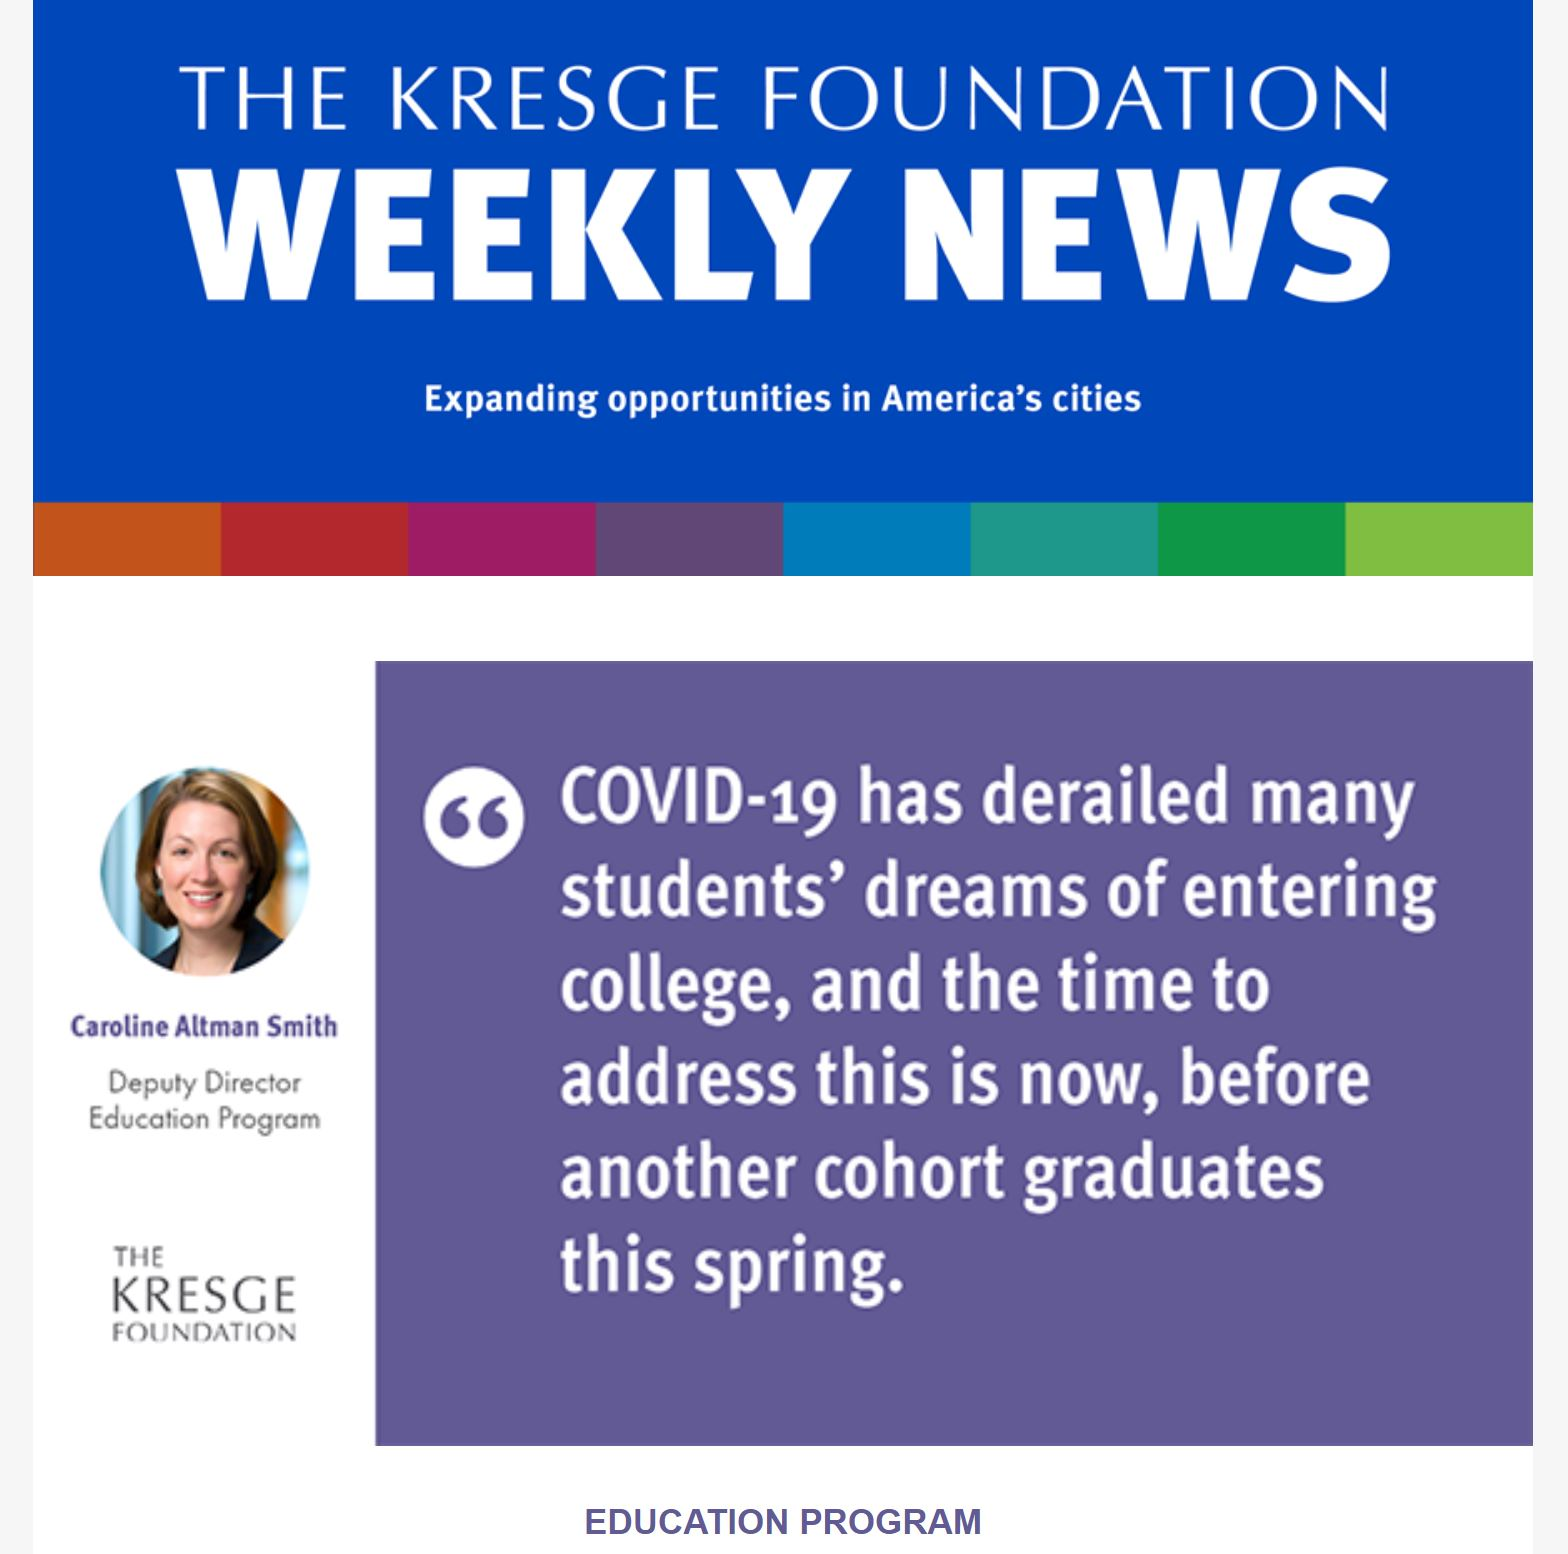 "Photo of the 3/11/2021 Kresge Foundation weekly newsletter with a graphic of a quote from Education Program Deputy Director Caroline Altman Smith: ""COVID-19 has derailed many students' dreams of entering college, and the time to address this is now, before another cohort graduates this spring,."